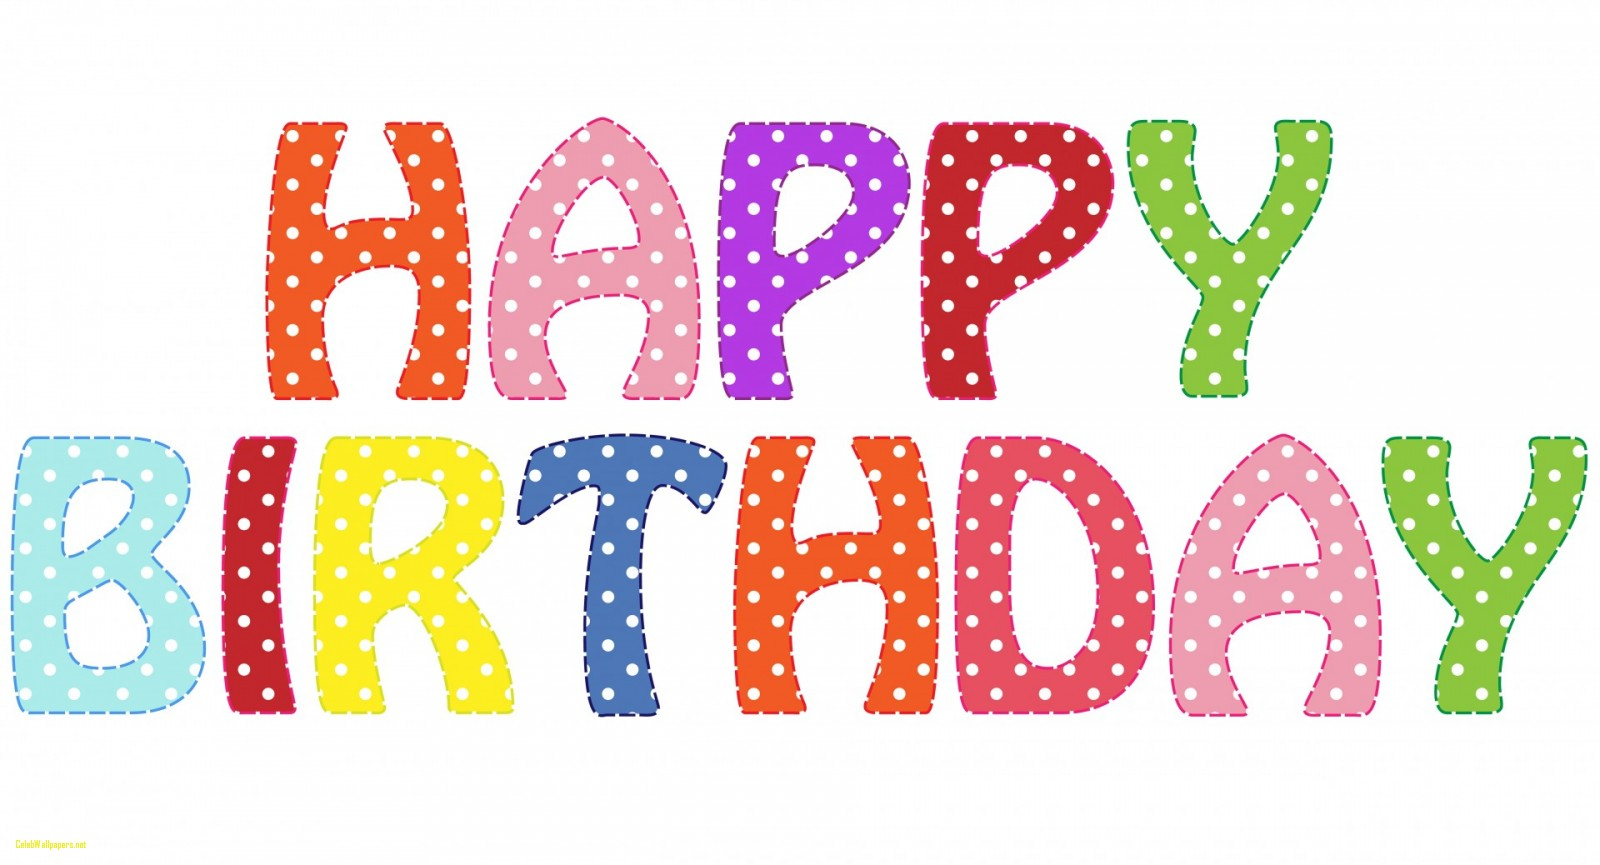 Beautiful clipart happy birthday. Image celebswallpaper text free